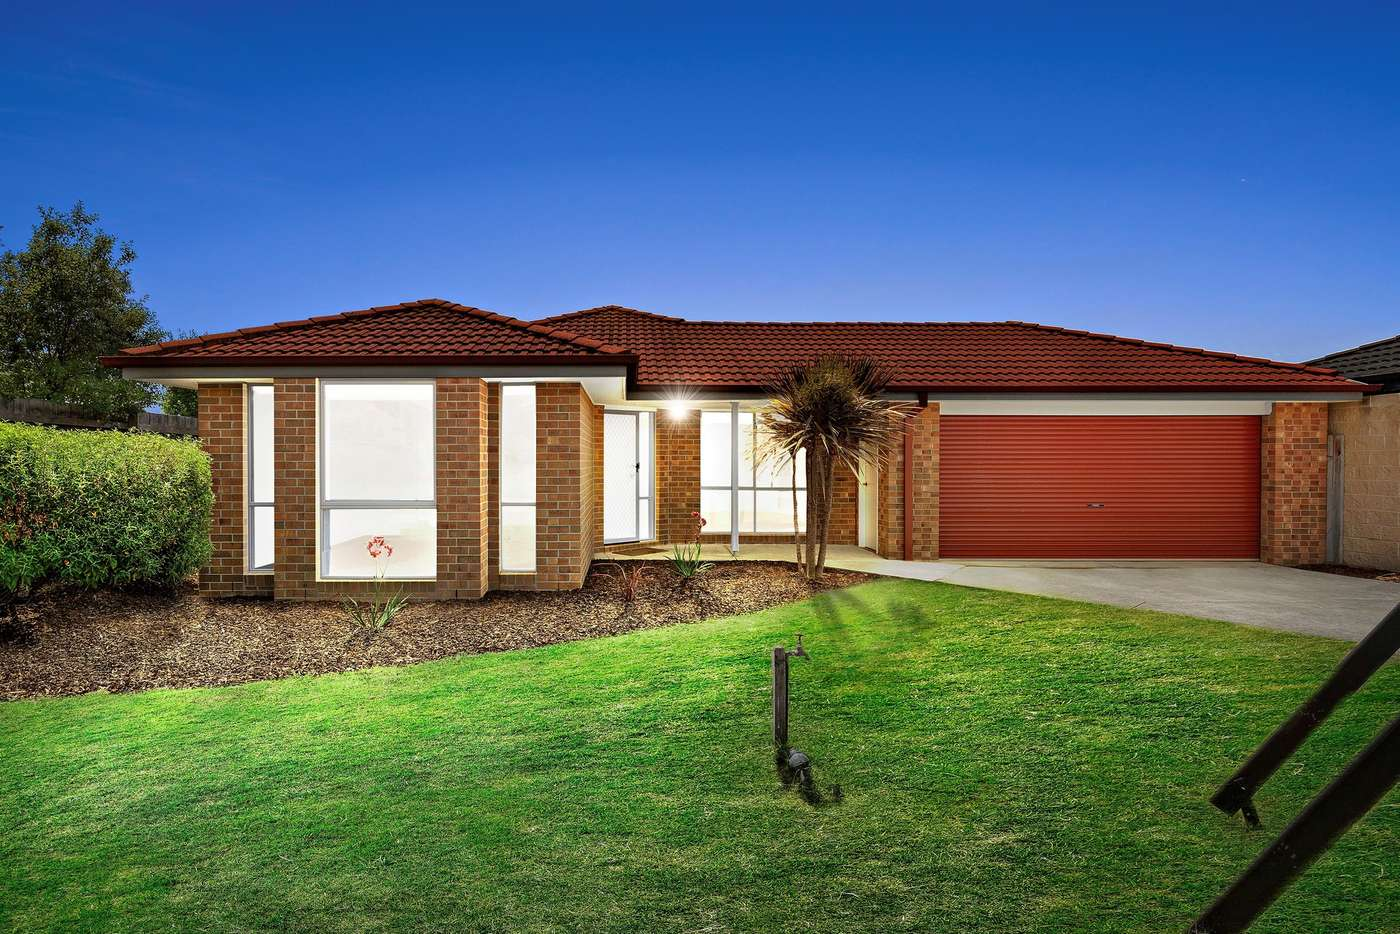 Main view of Homely house listing, 9 Sunset Rise, Hastings VIC 3915